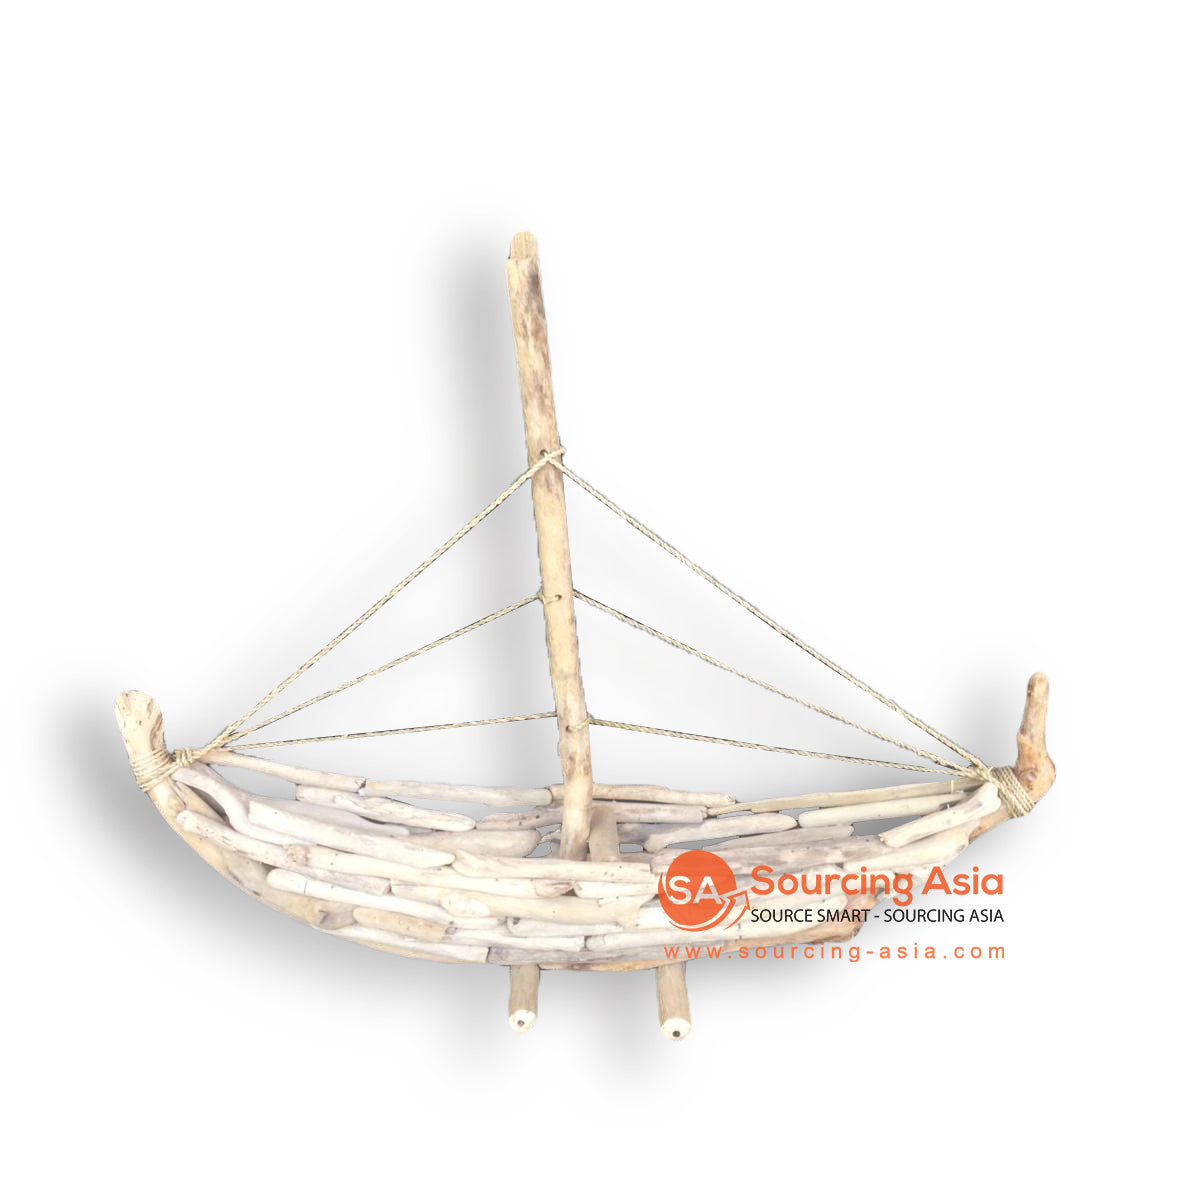 PJY033 DRIFTWOOD BOAT